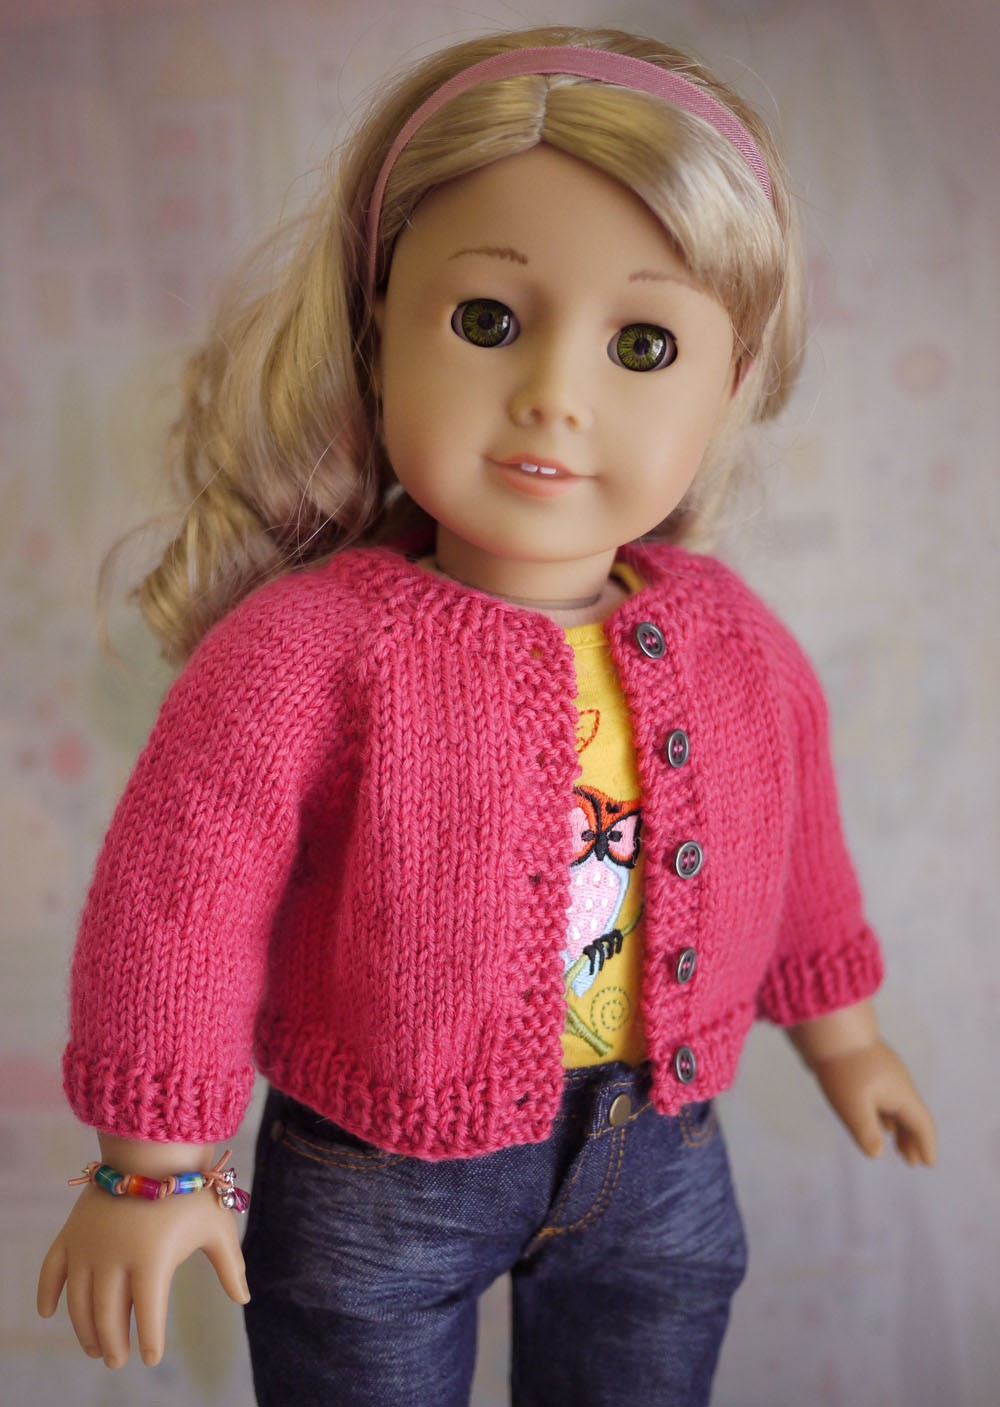 Free Cardigan Knitting Patterns for American Girl Dolls